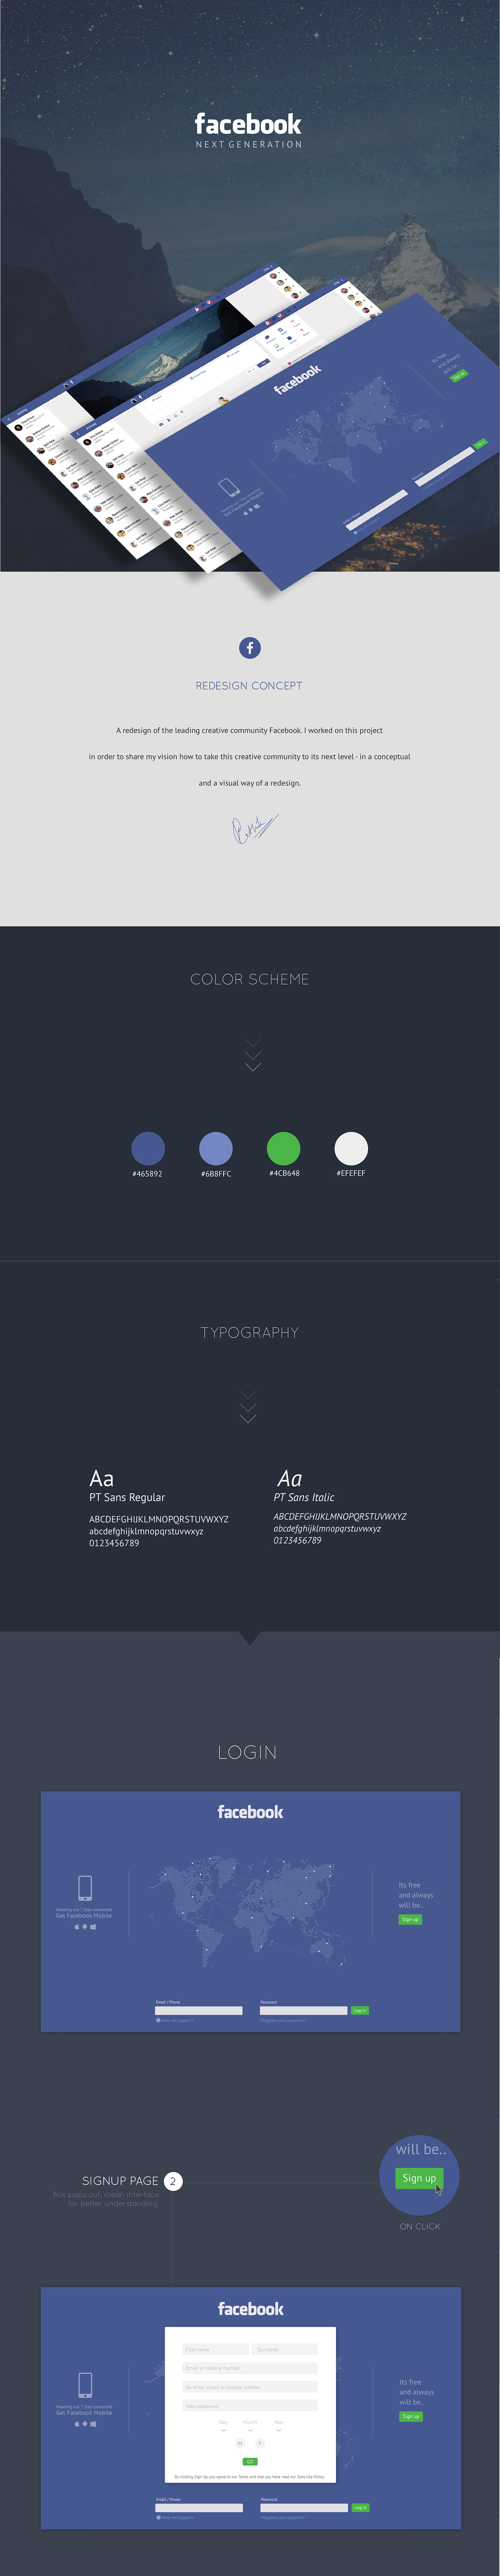 Facebook Next Generation Facebook UI Facebook Redesign user interface user experience redesign concept fresh new look interaction UI ux Web graphic social media Responsive